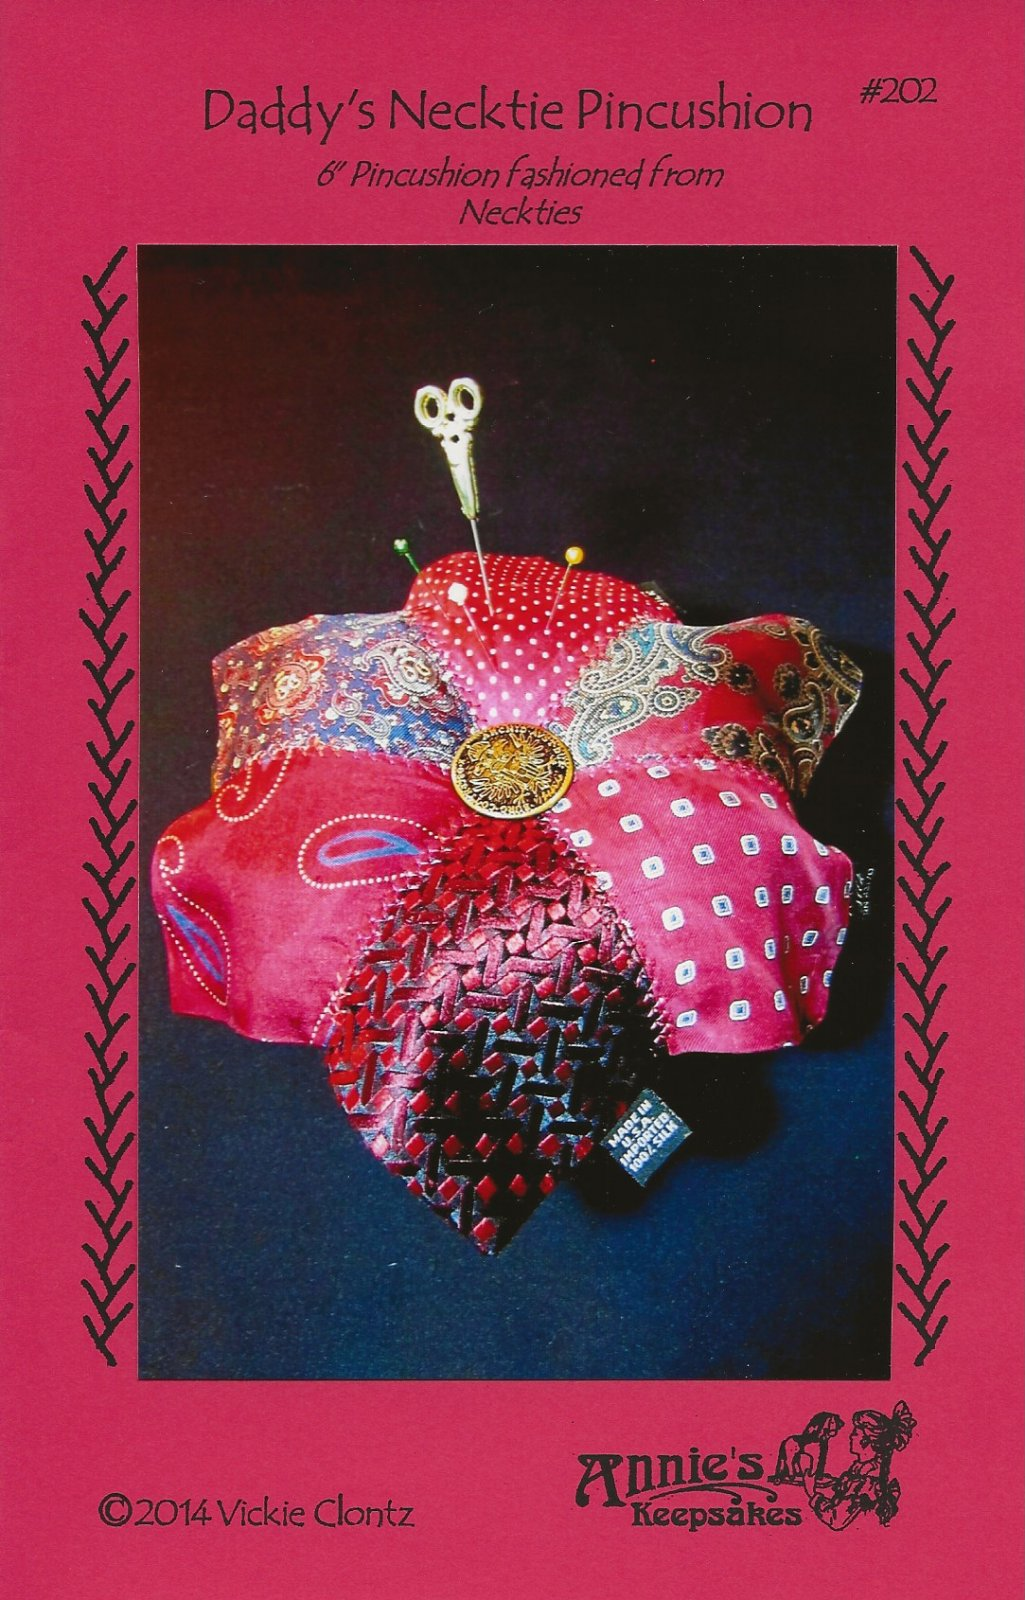 Daddy's Necktie Pincushion